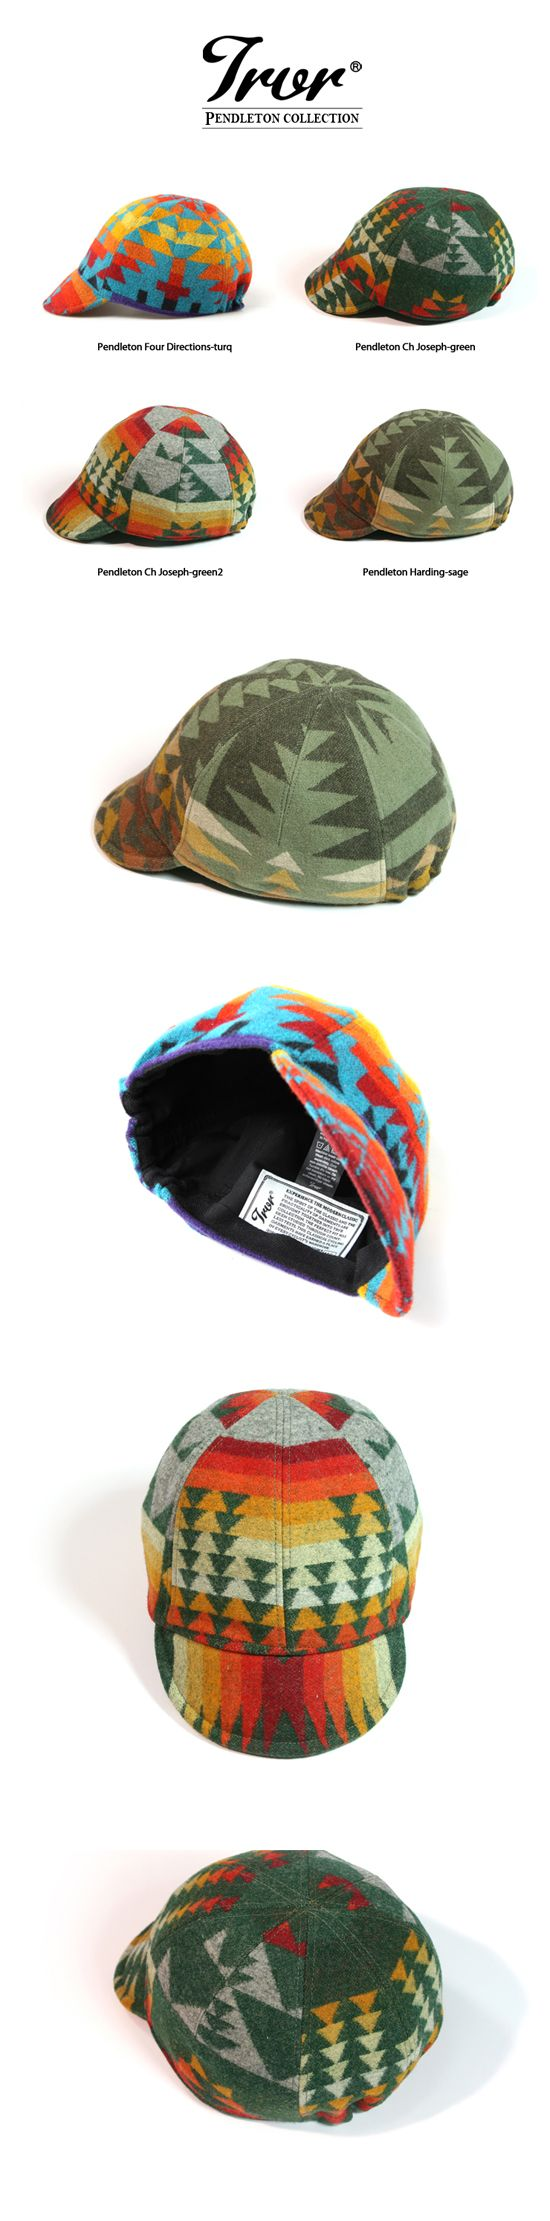 SERIOUSLY?! Pendleton cycling caps?!